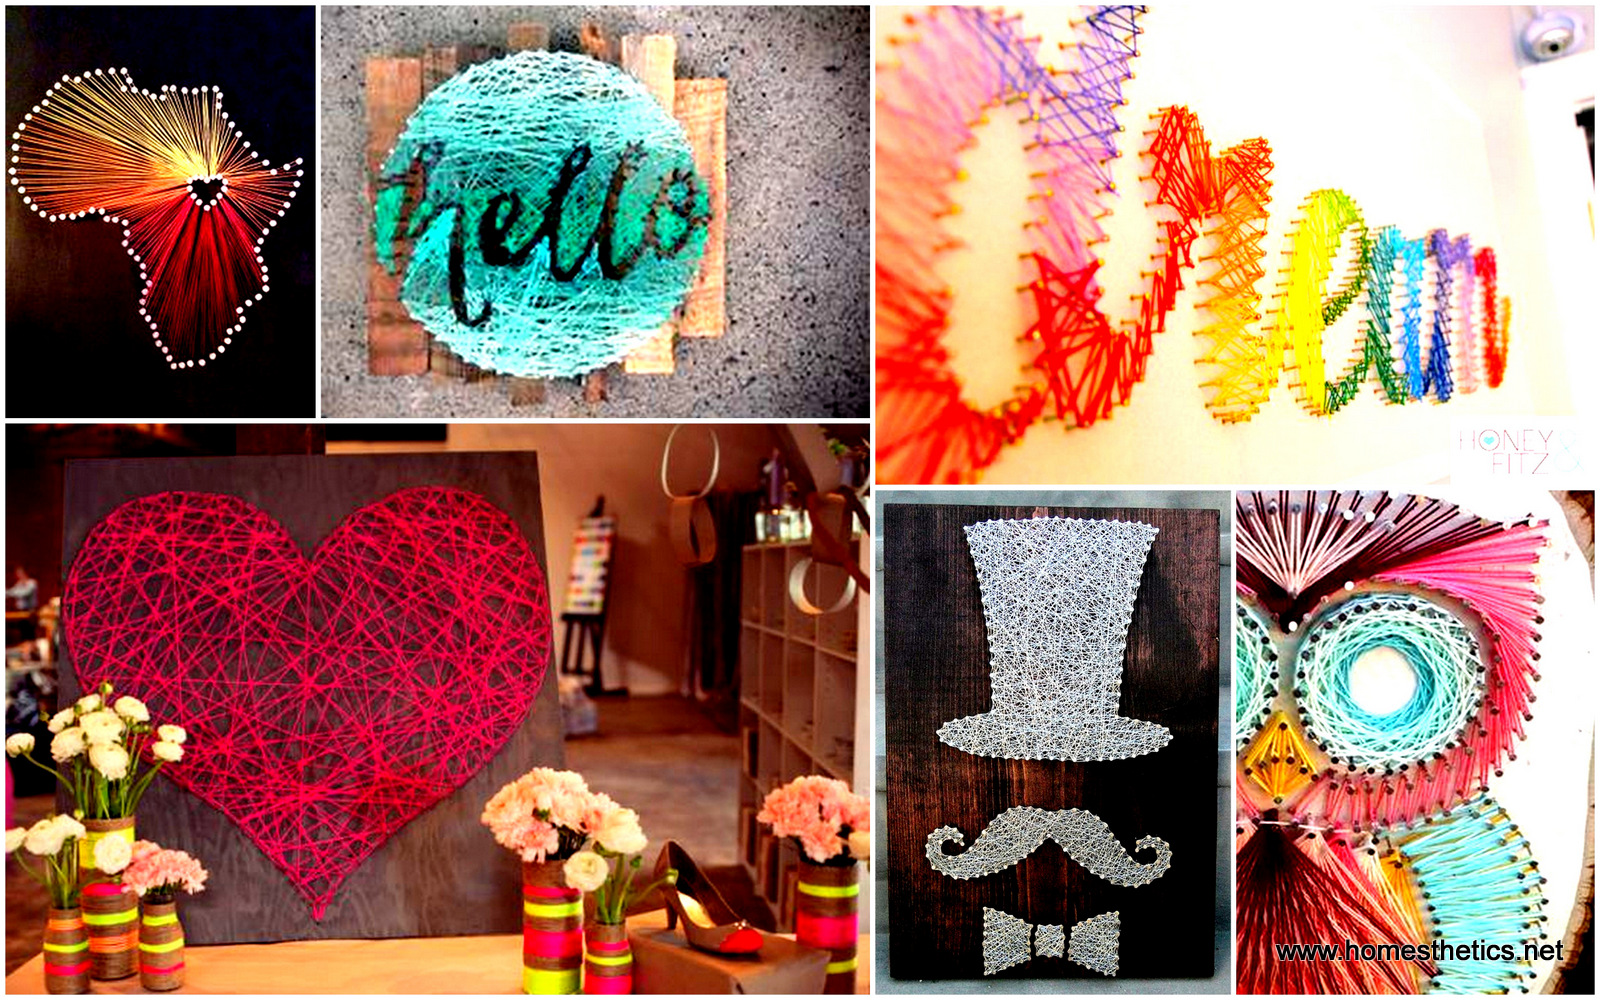 Design Diy Art Projects 28 diy thread and nails string art projects that will beautifully reshape your interior decor